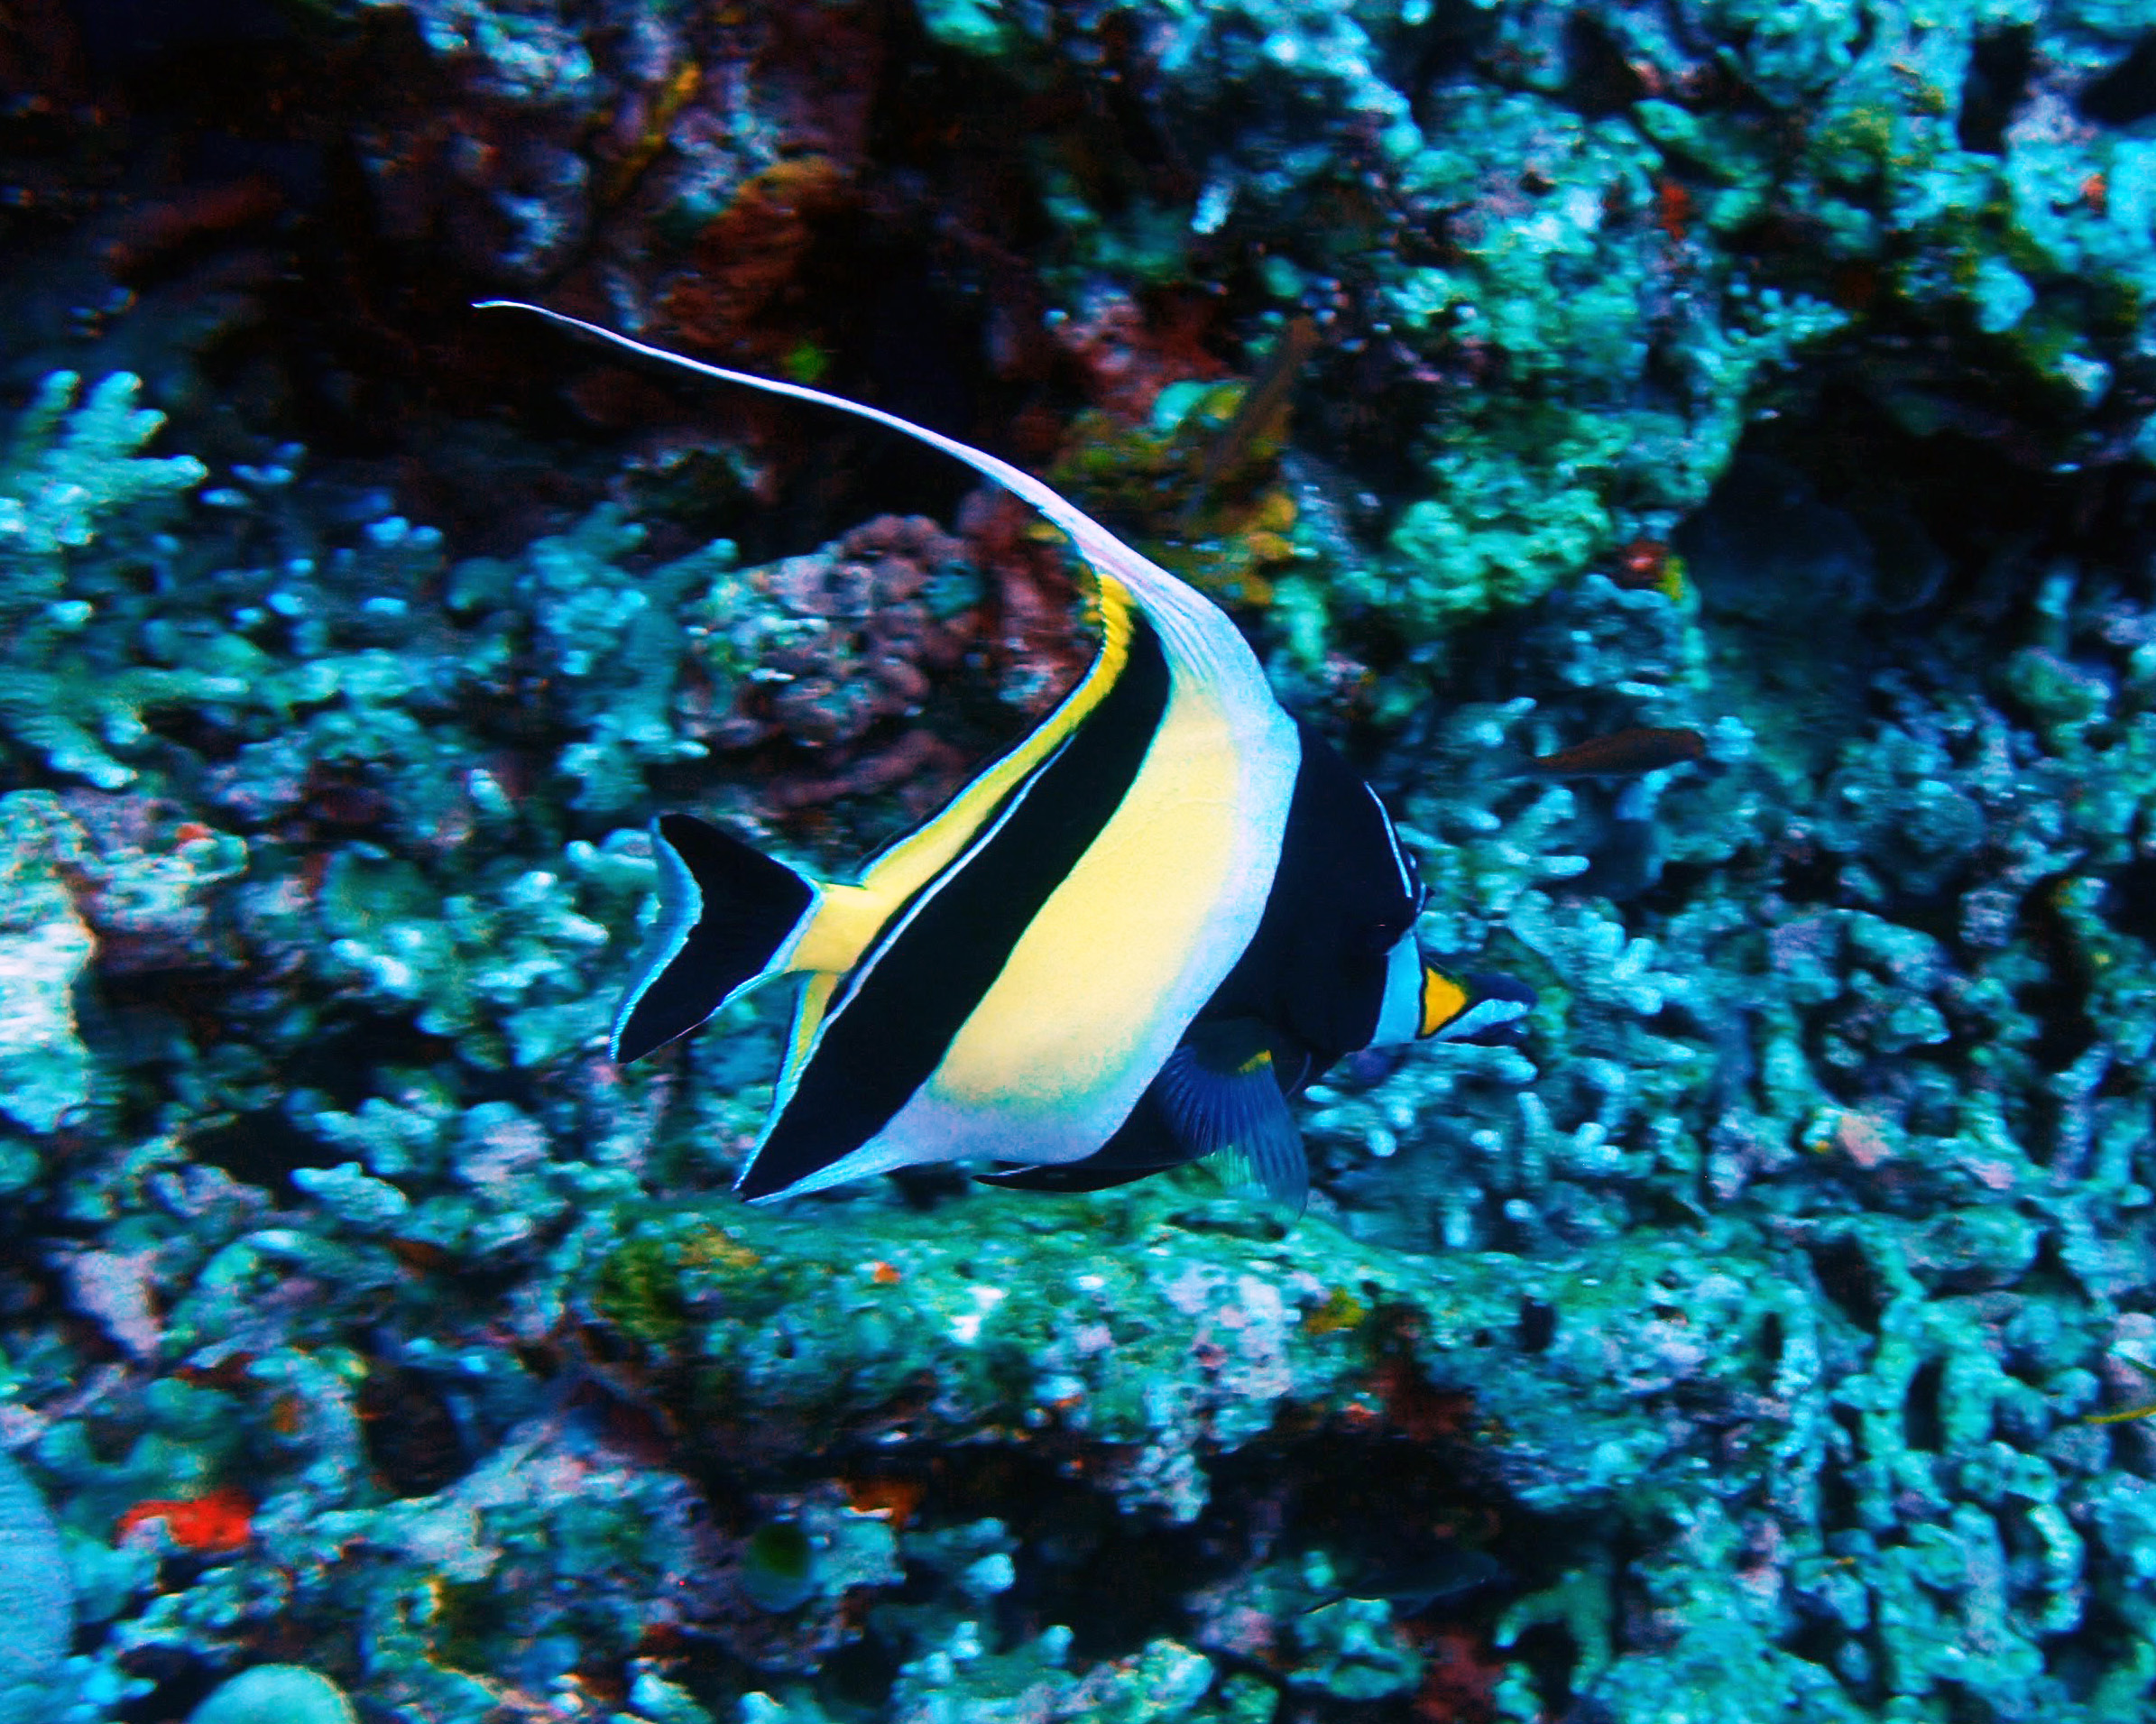 The moorish idol requires expert care and is not recommended for beginner aquariums.